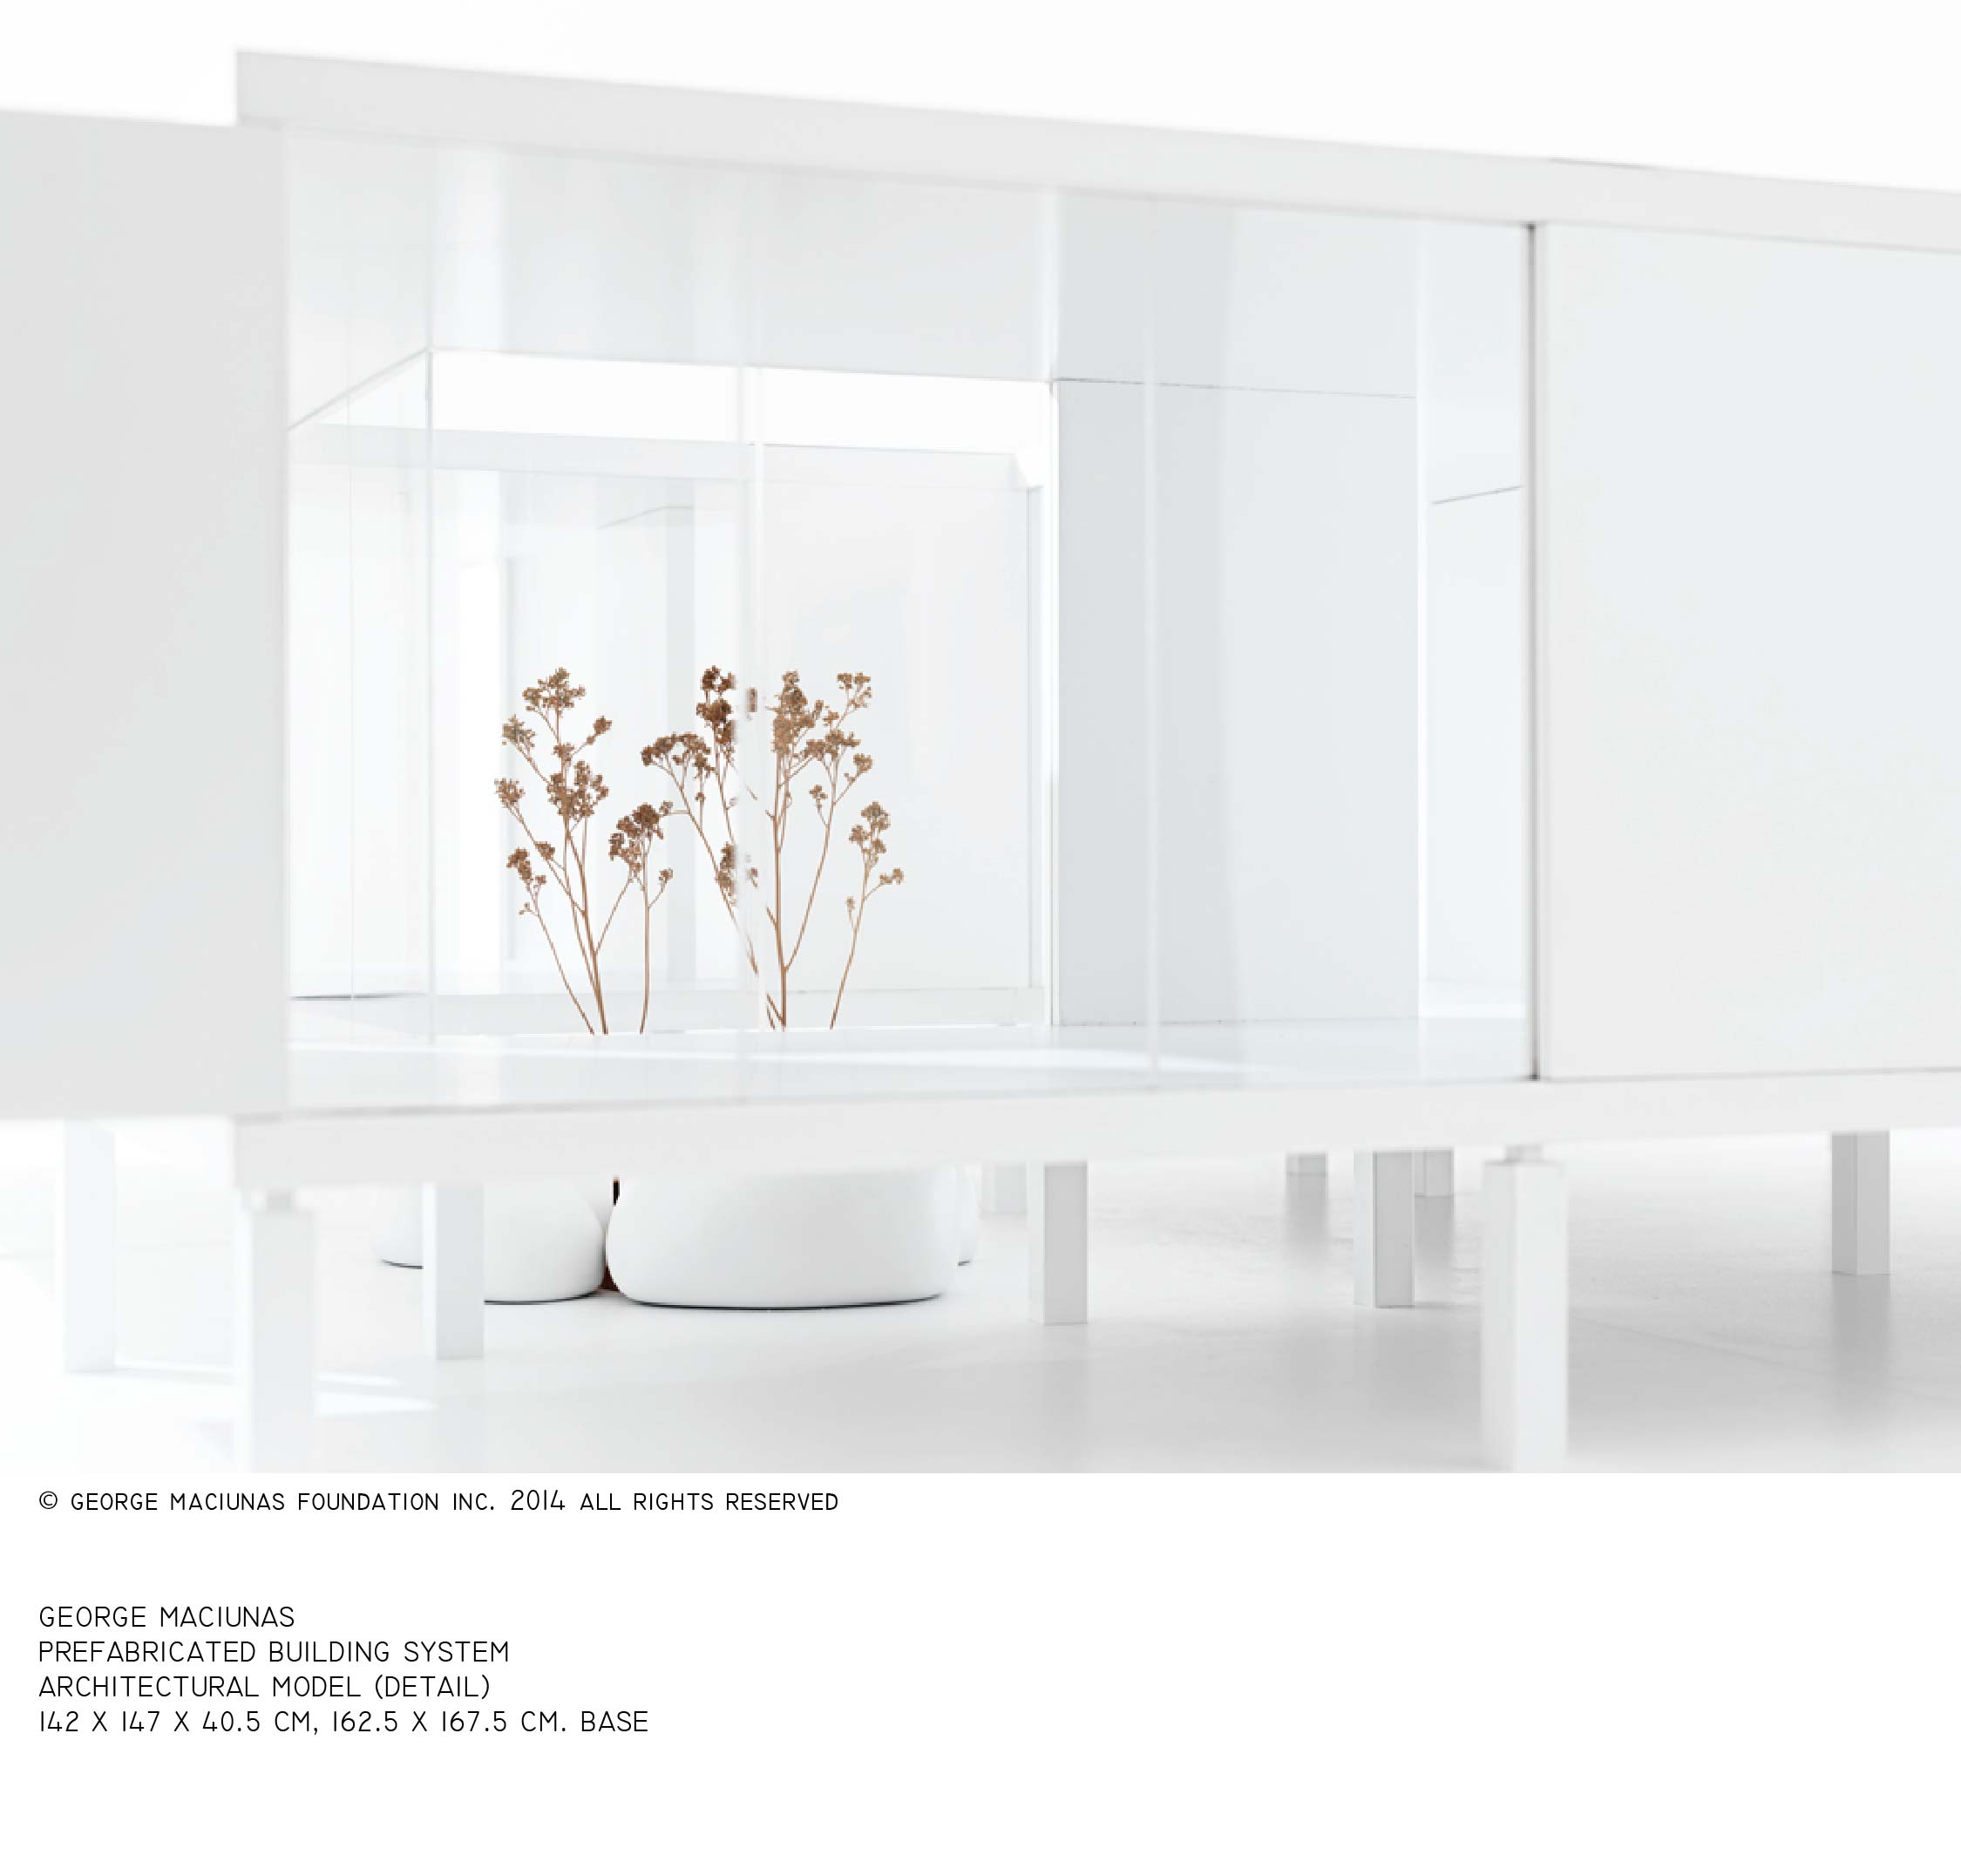 FLUXHOUSE ARCHITECTURAL MODEL (3)